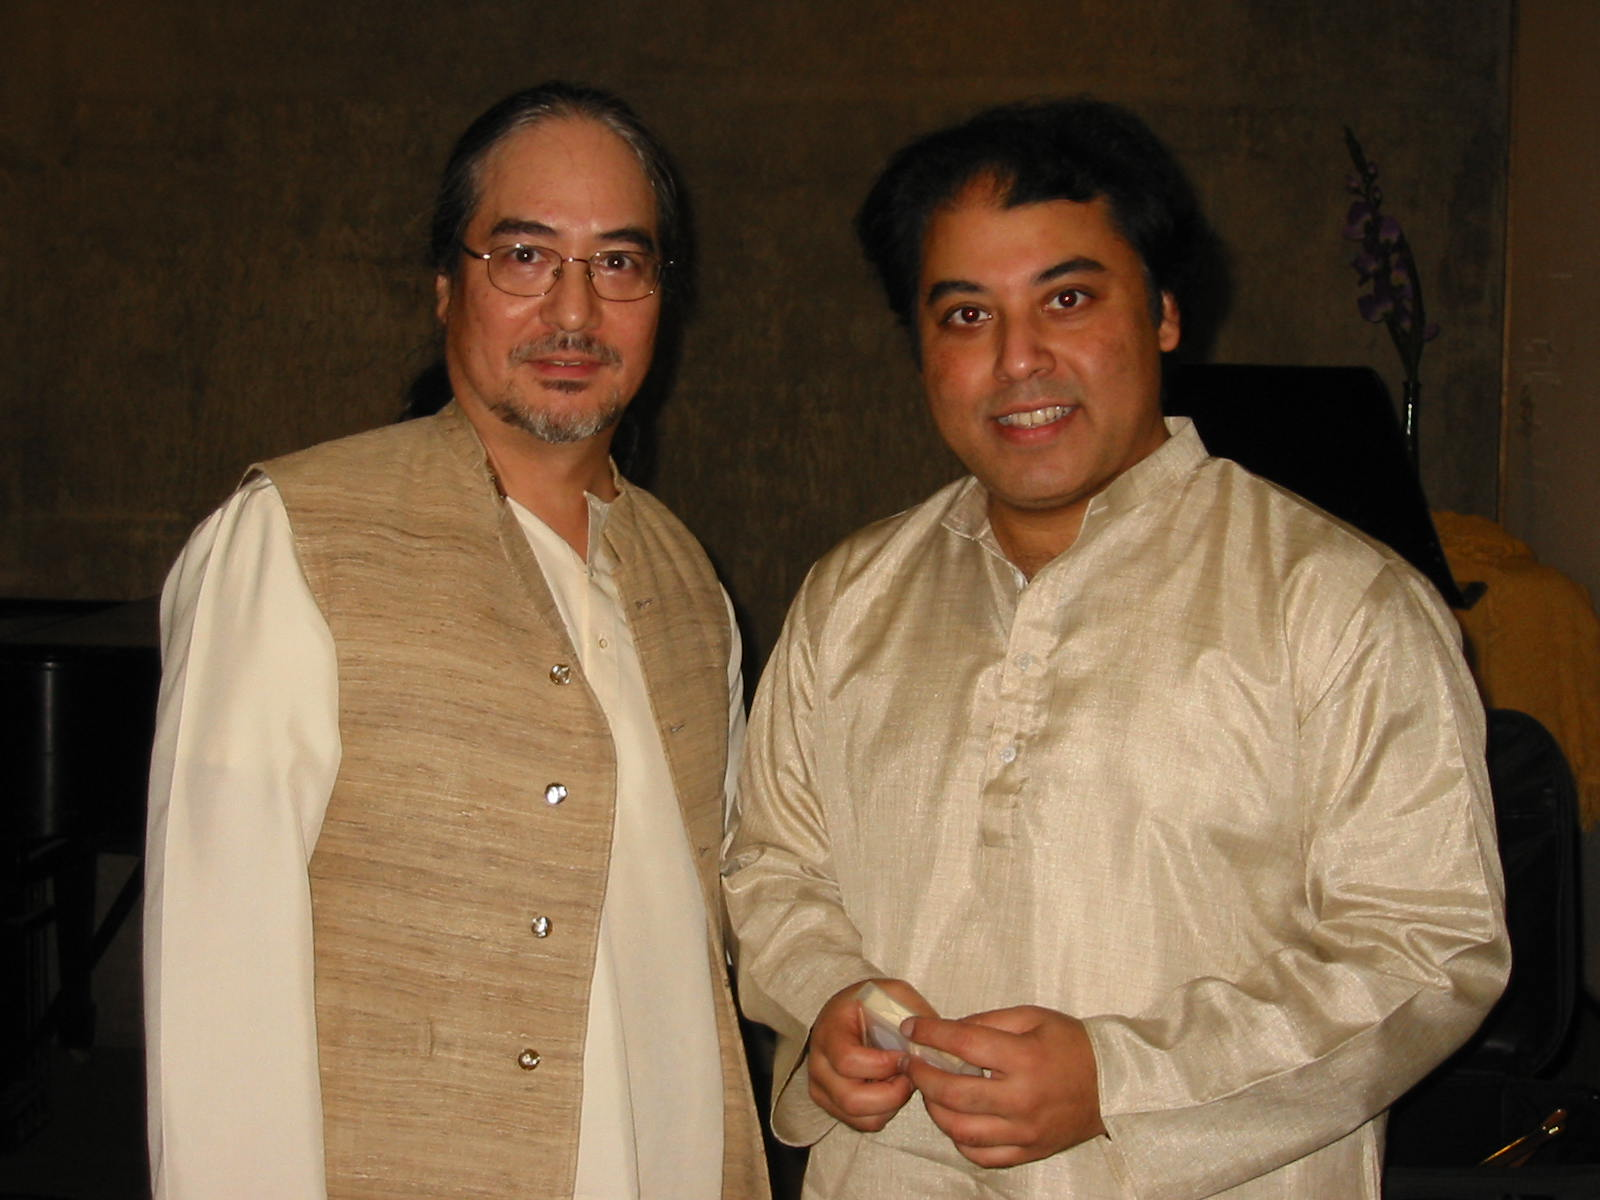 Ray with Ustad Irshad Khan